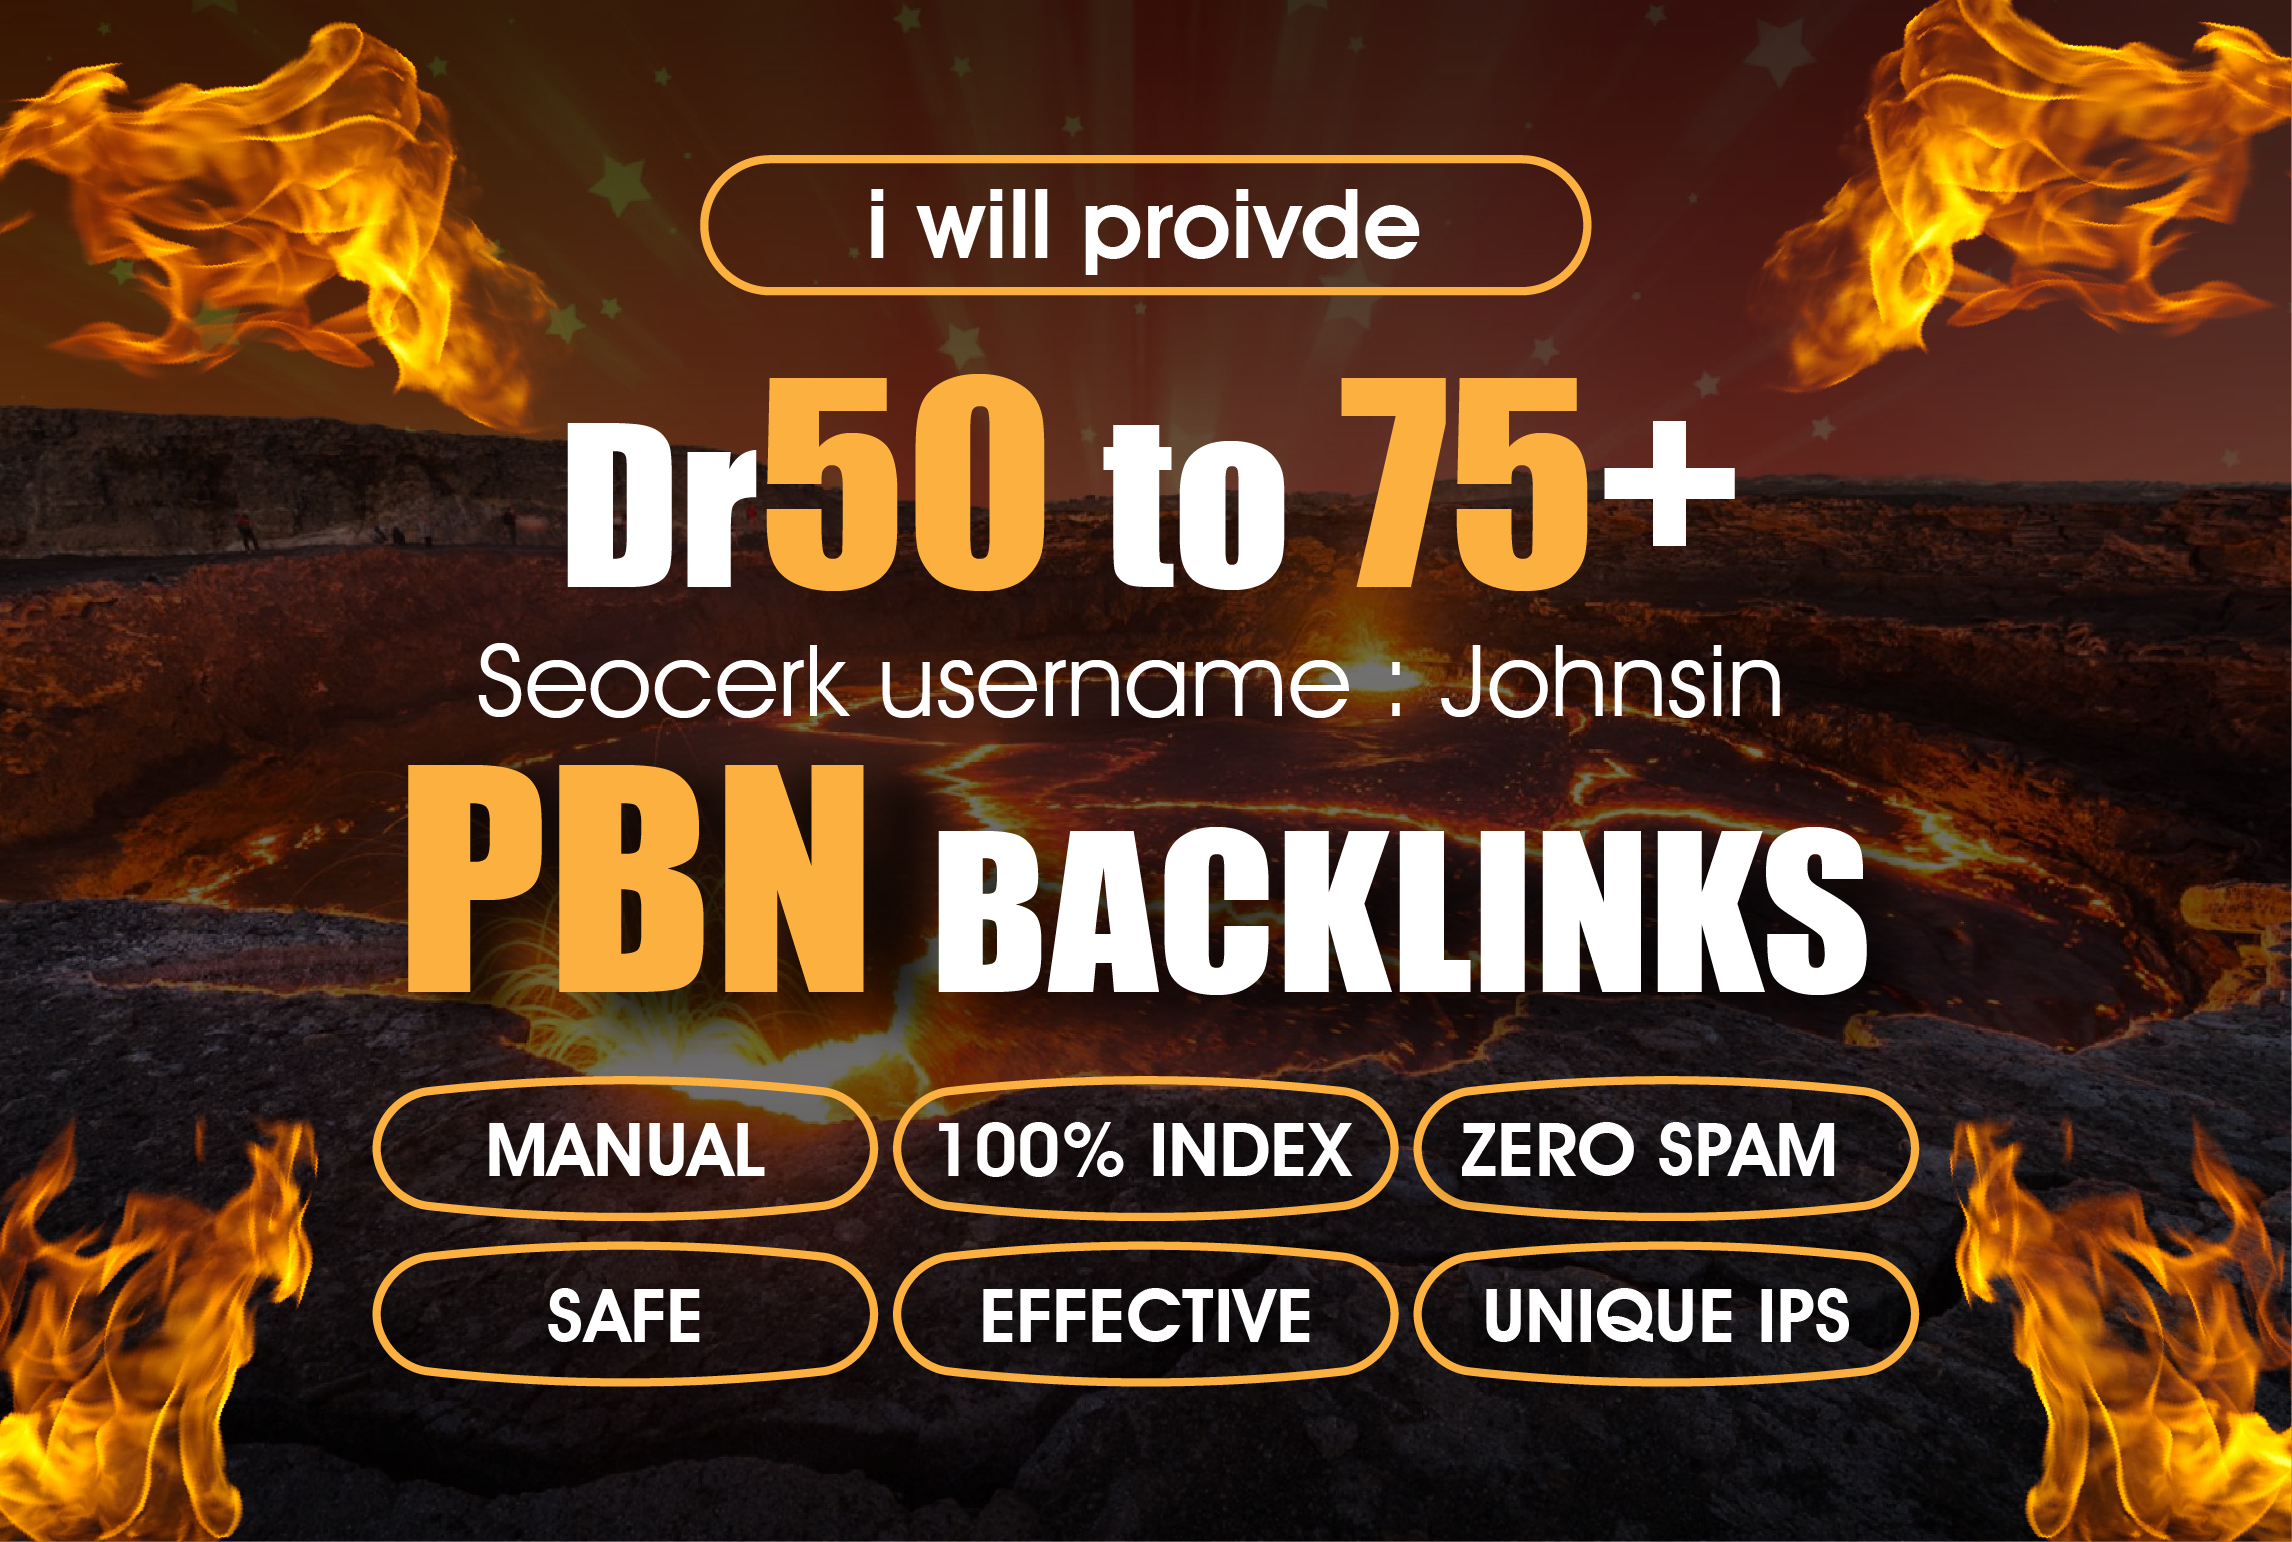 I will Proivde 10 Manual High Dr 50To75 Homepage PBN Dofollow Backlinks